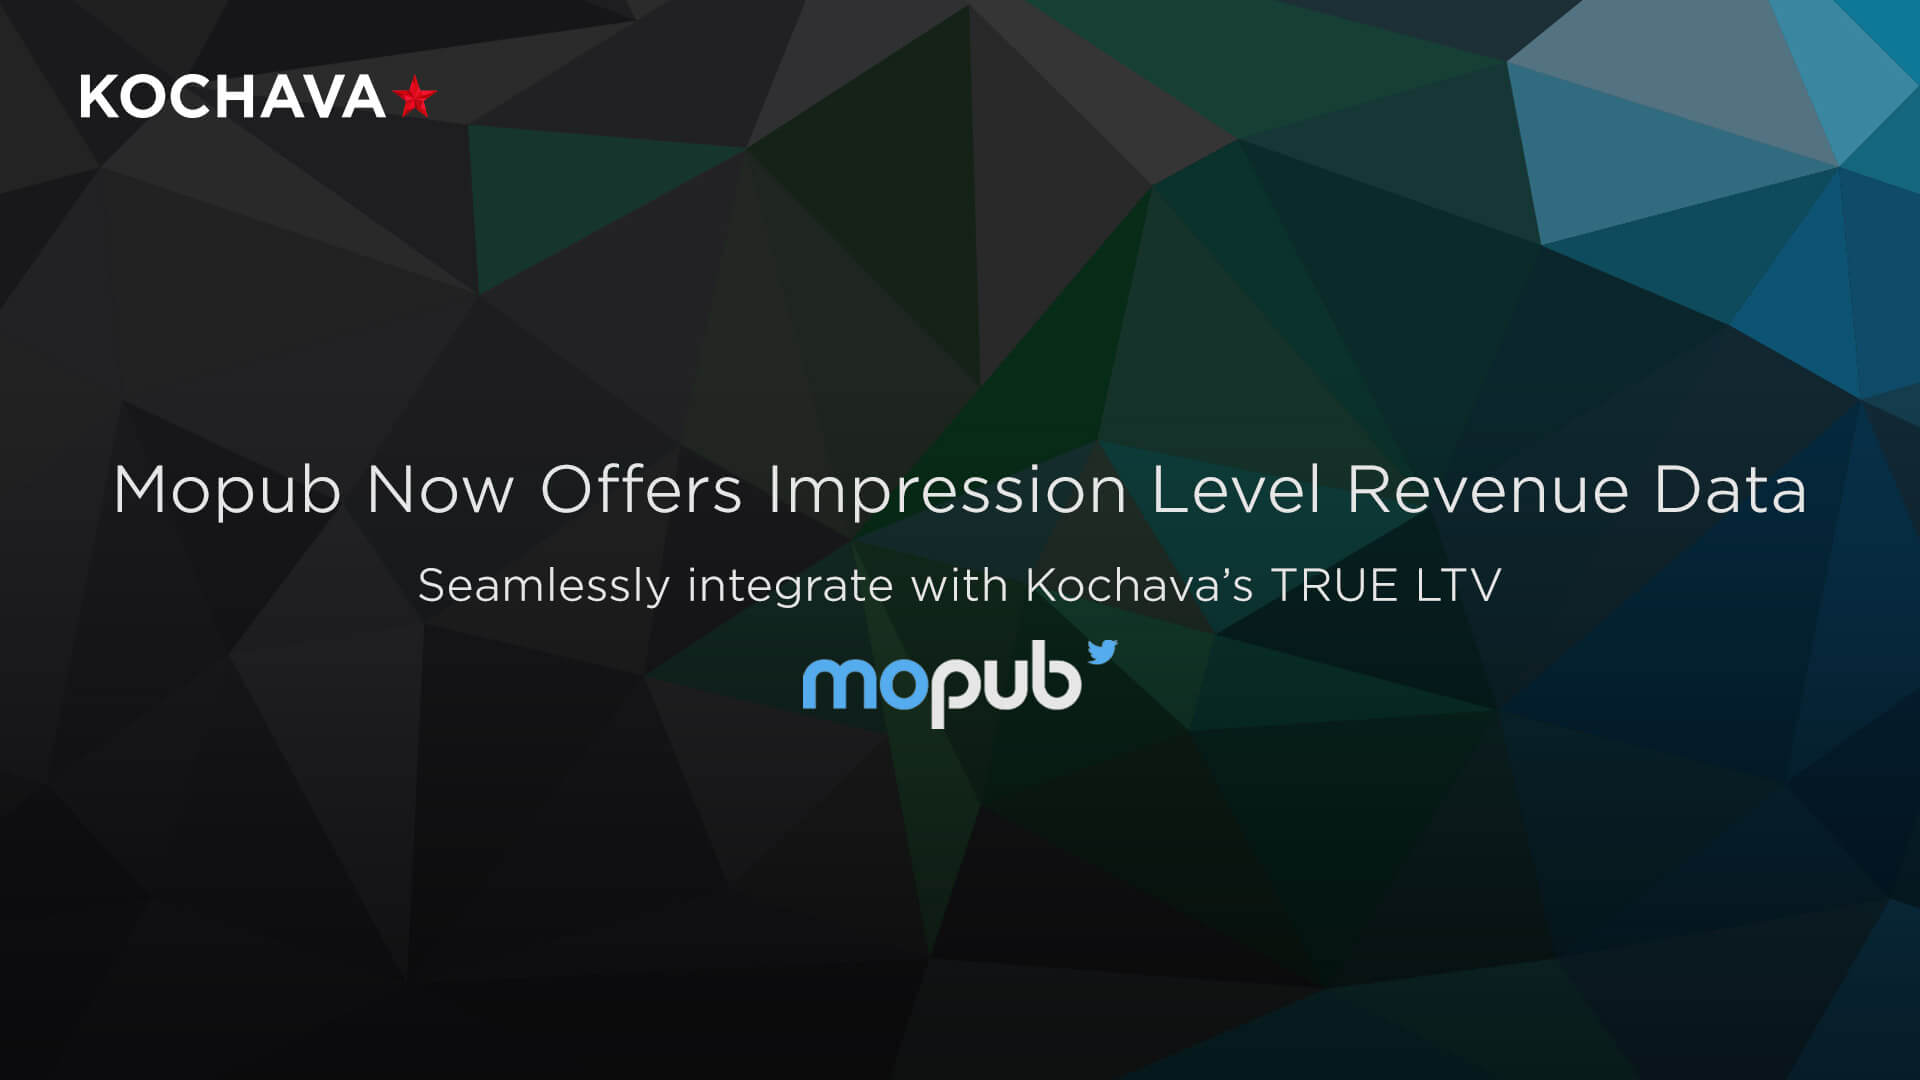 MoPub now offers impression level revenue data